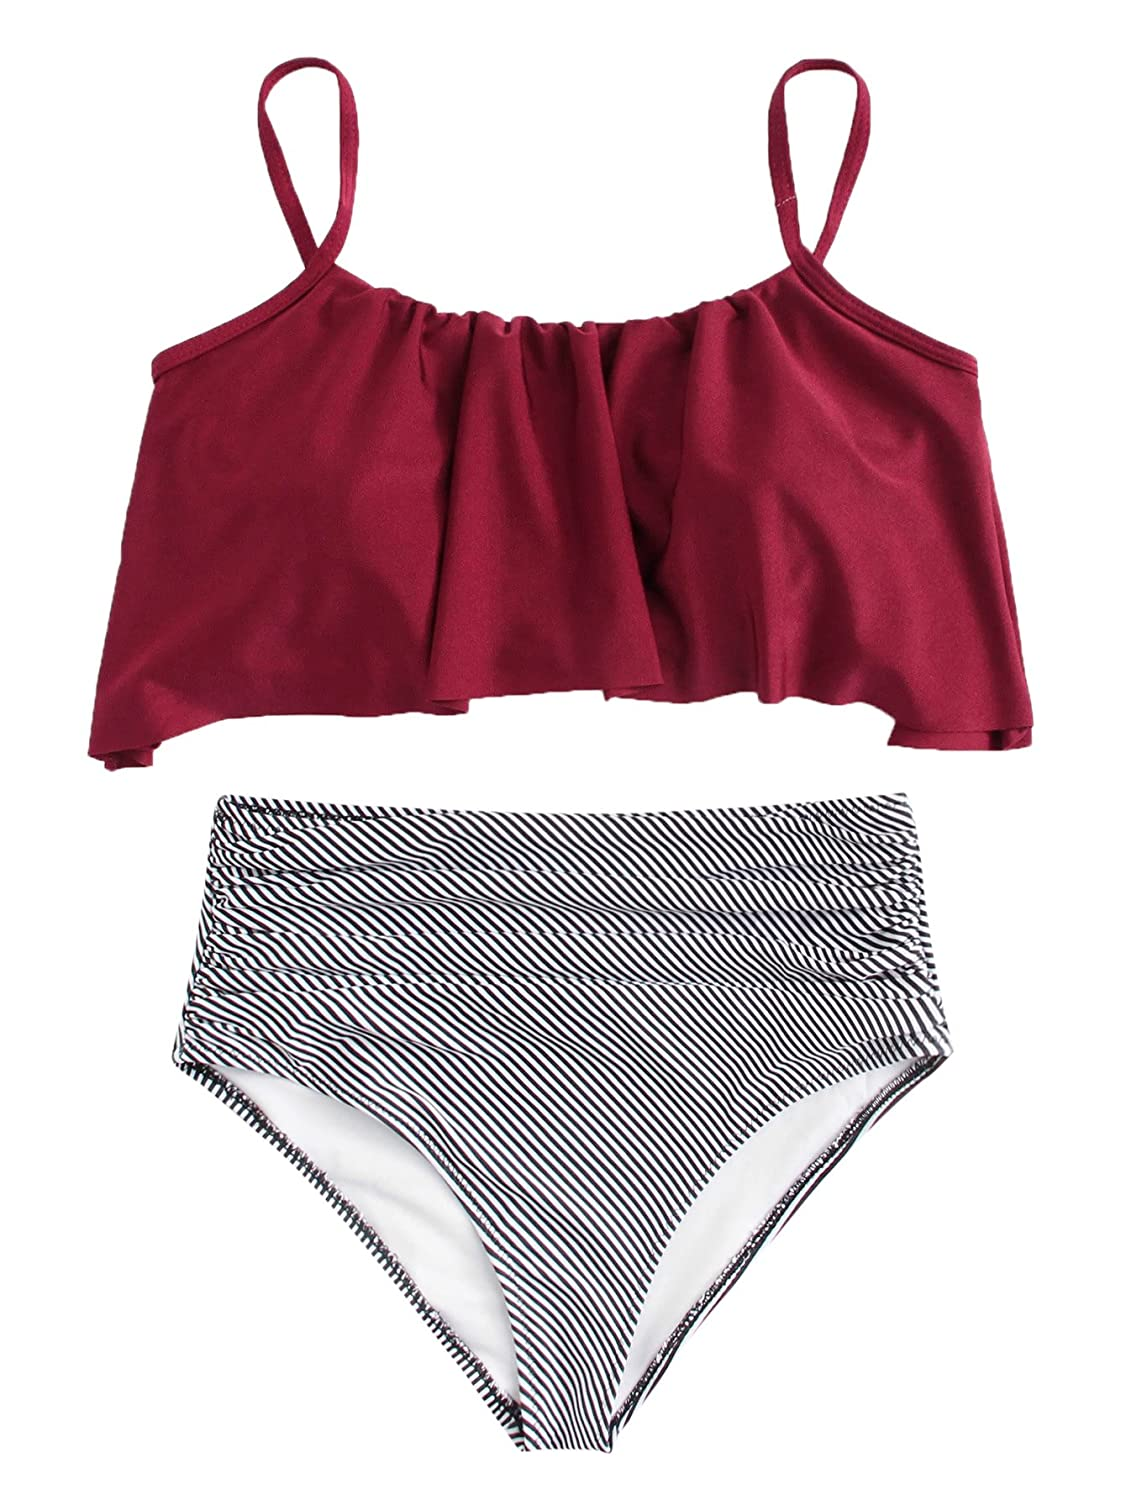 SOLY HUX Women's Strappy Flounce Bikini Striped High Waisted Swimsuit Burgundy XL